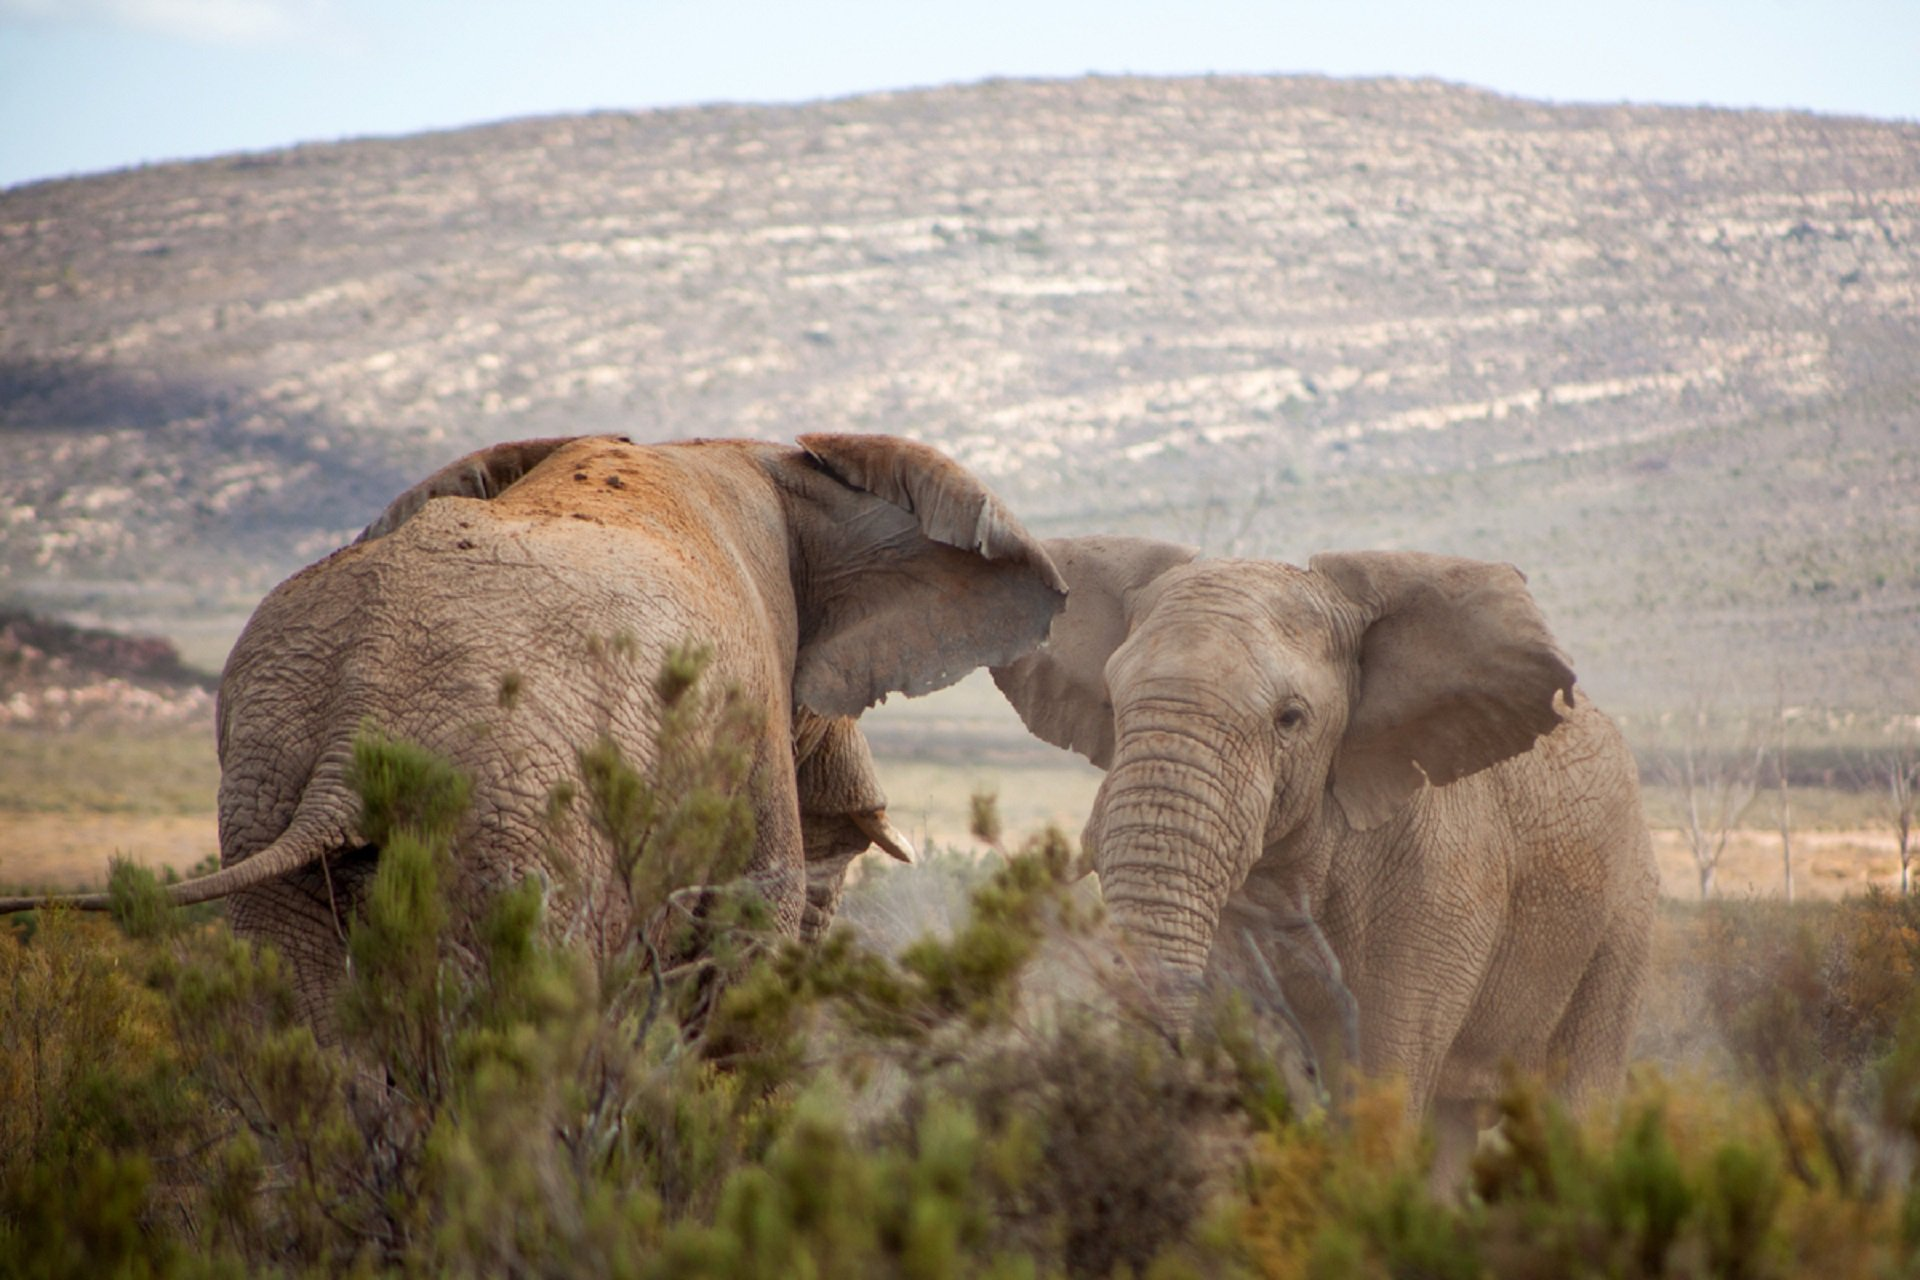 Beyond the classroom: Learn about Elephants